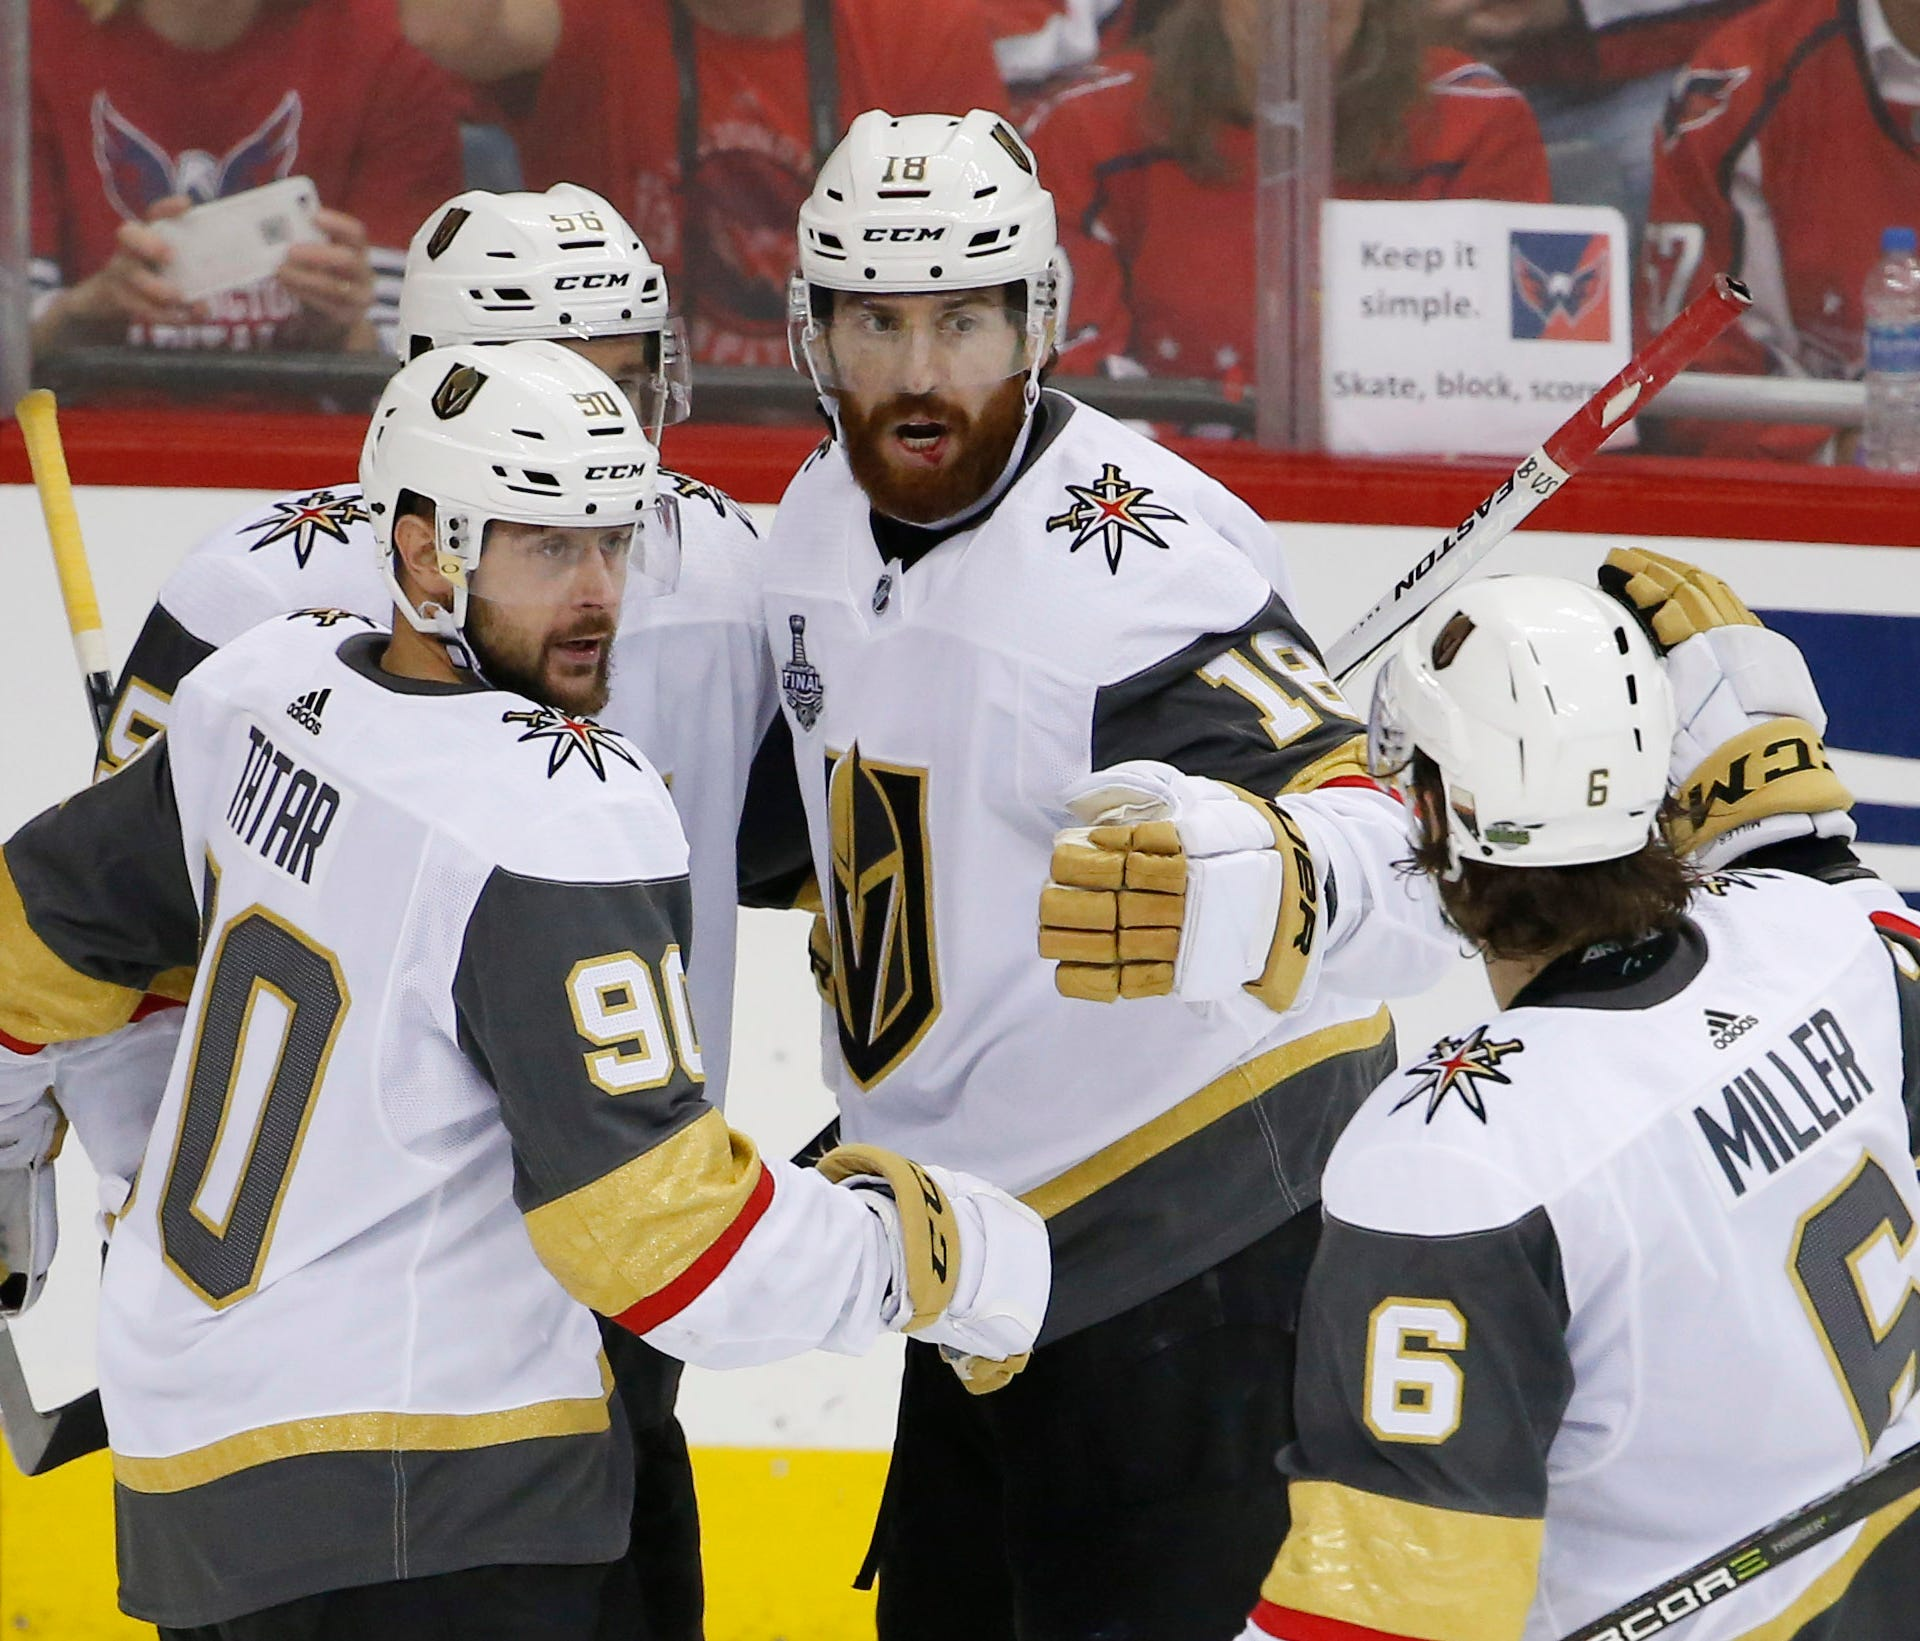 Vegas Golden Knights left wing James Neal (18) celebrates with teammates after scoring a goal against the Washington Capitals in the third period of Game 4 of the Stanley Cup Final.